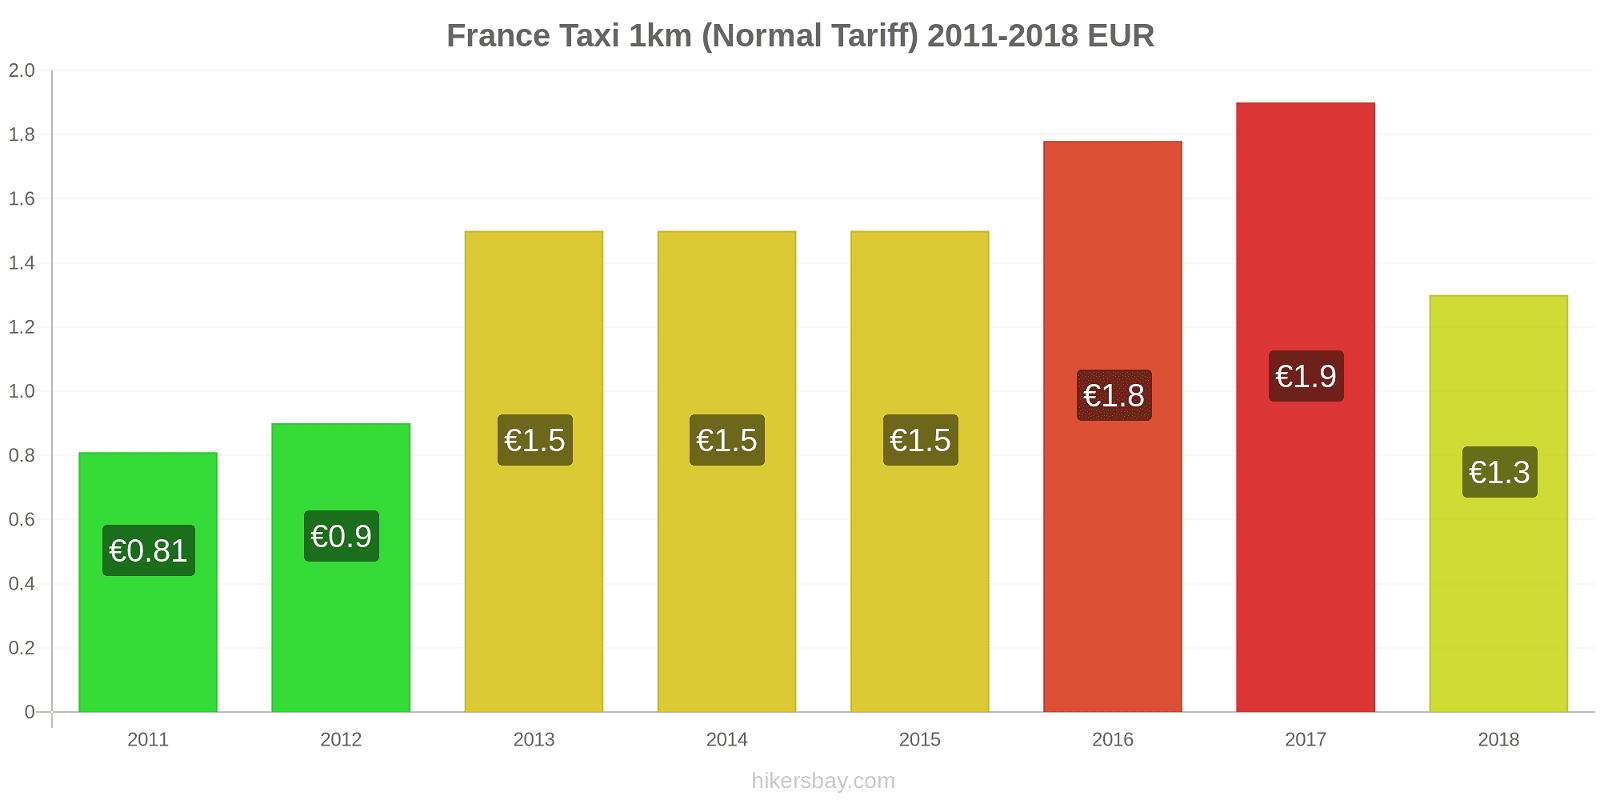 France price changes Taxi 1km (Normal Tariff) hikersbay.com